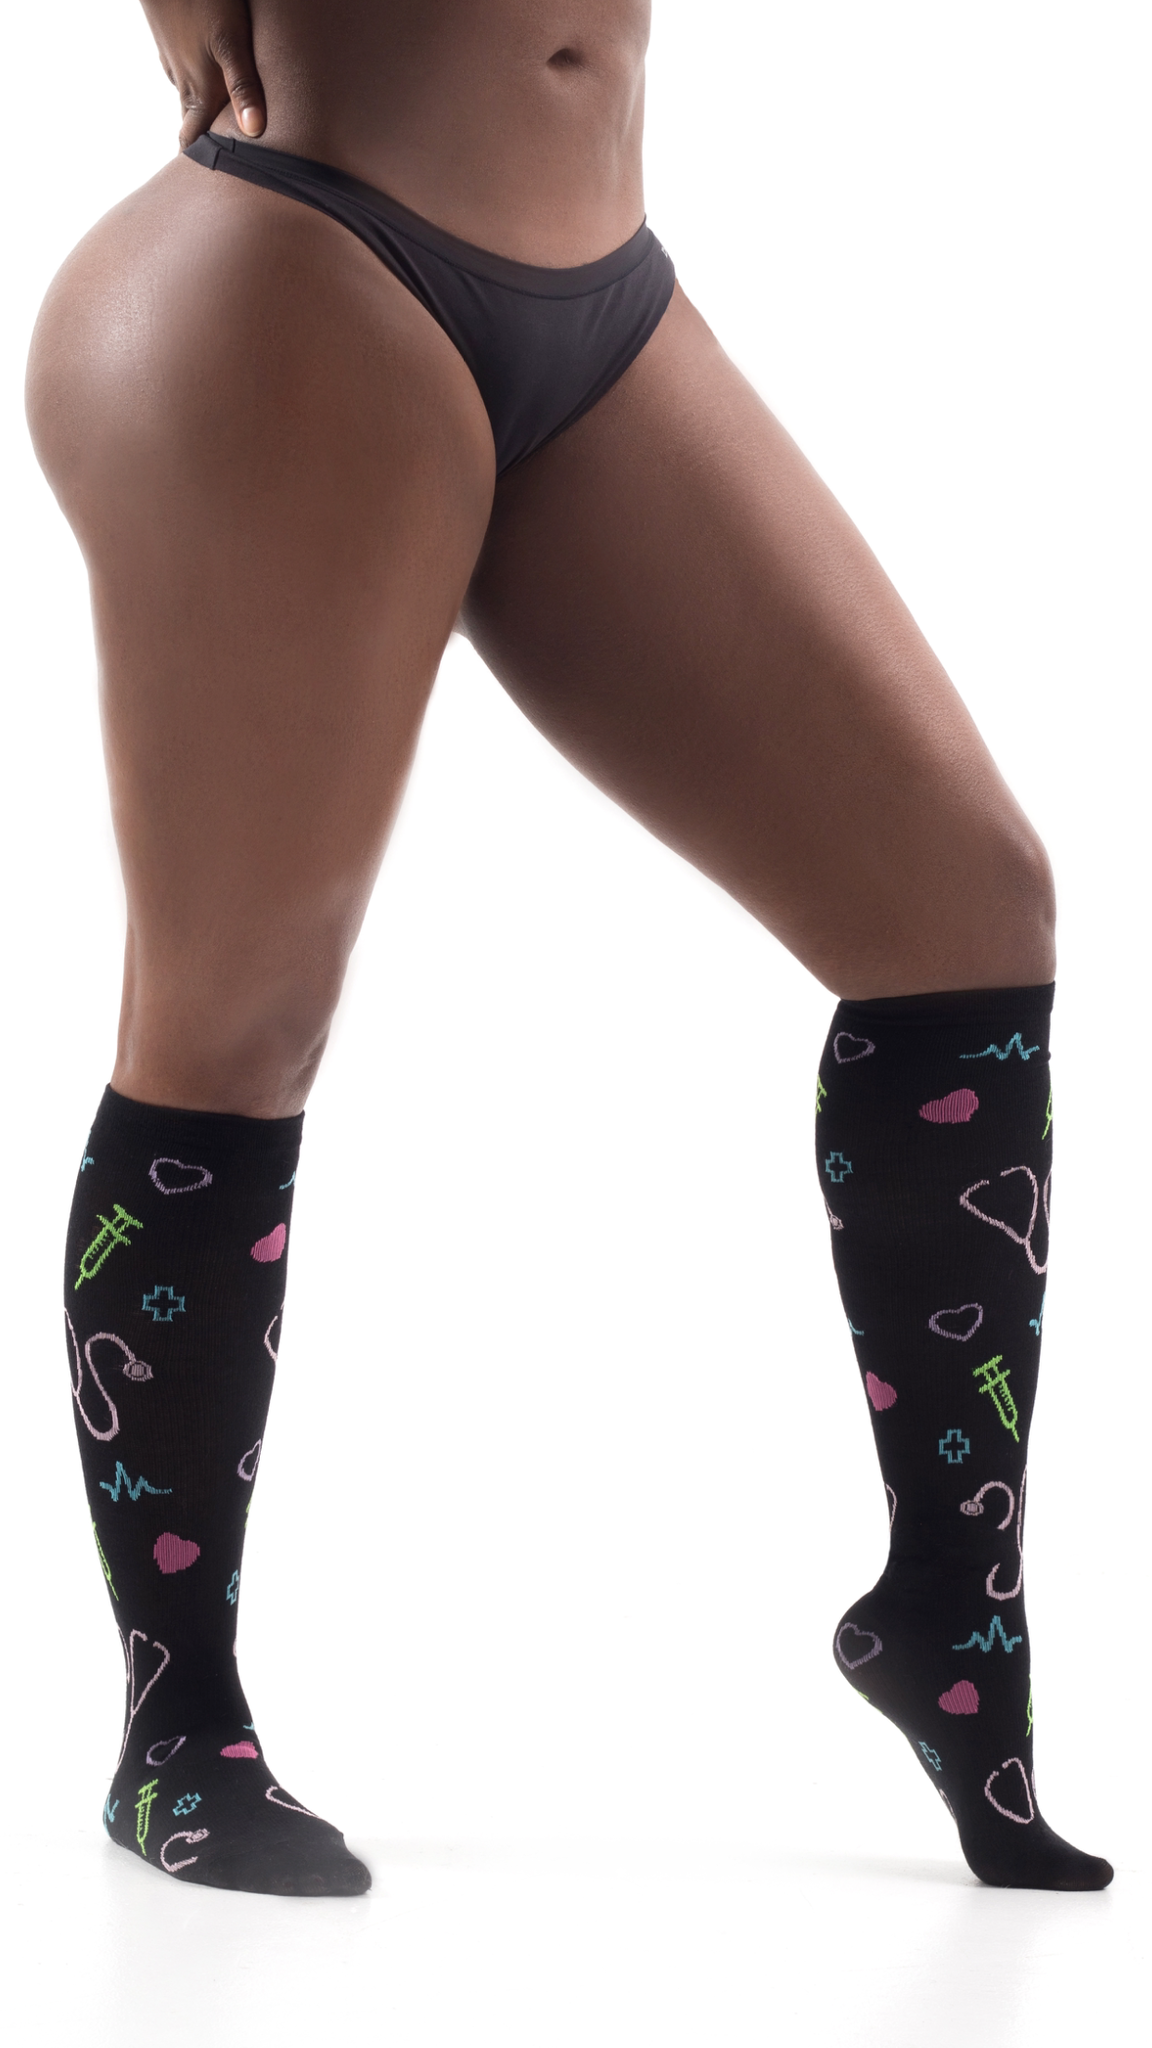 Post-Surgery Compression Socks - ImSoCheeky